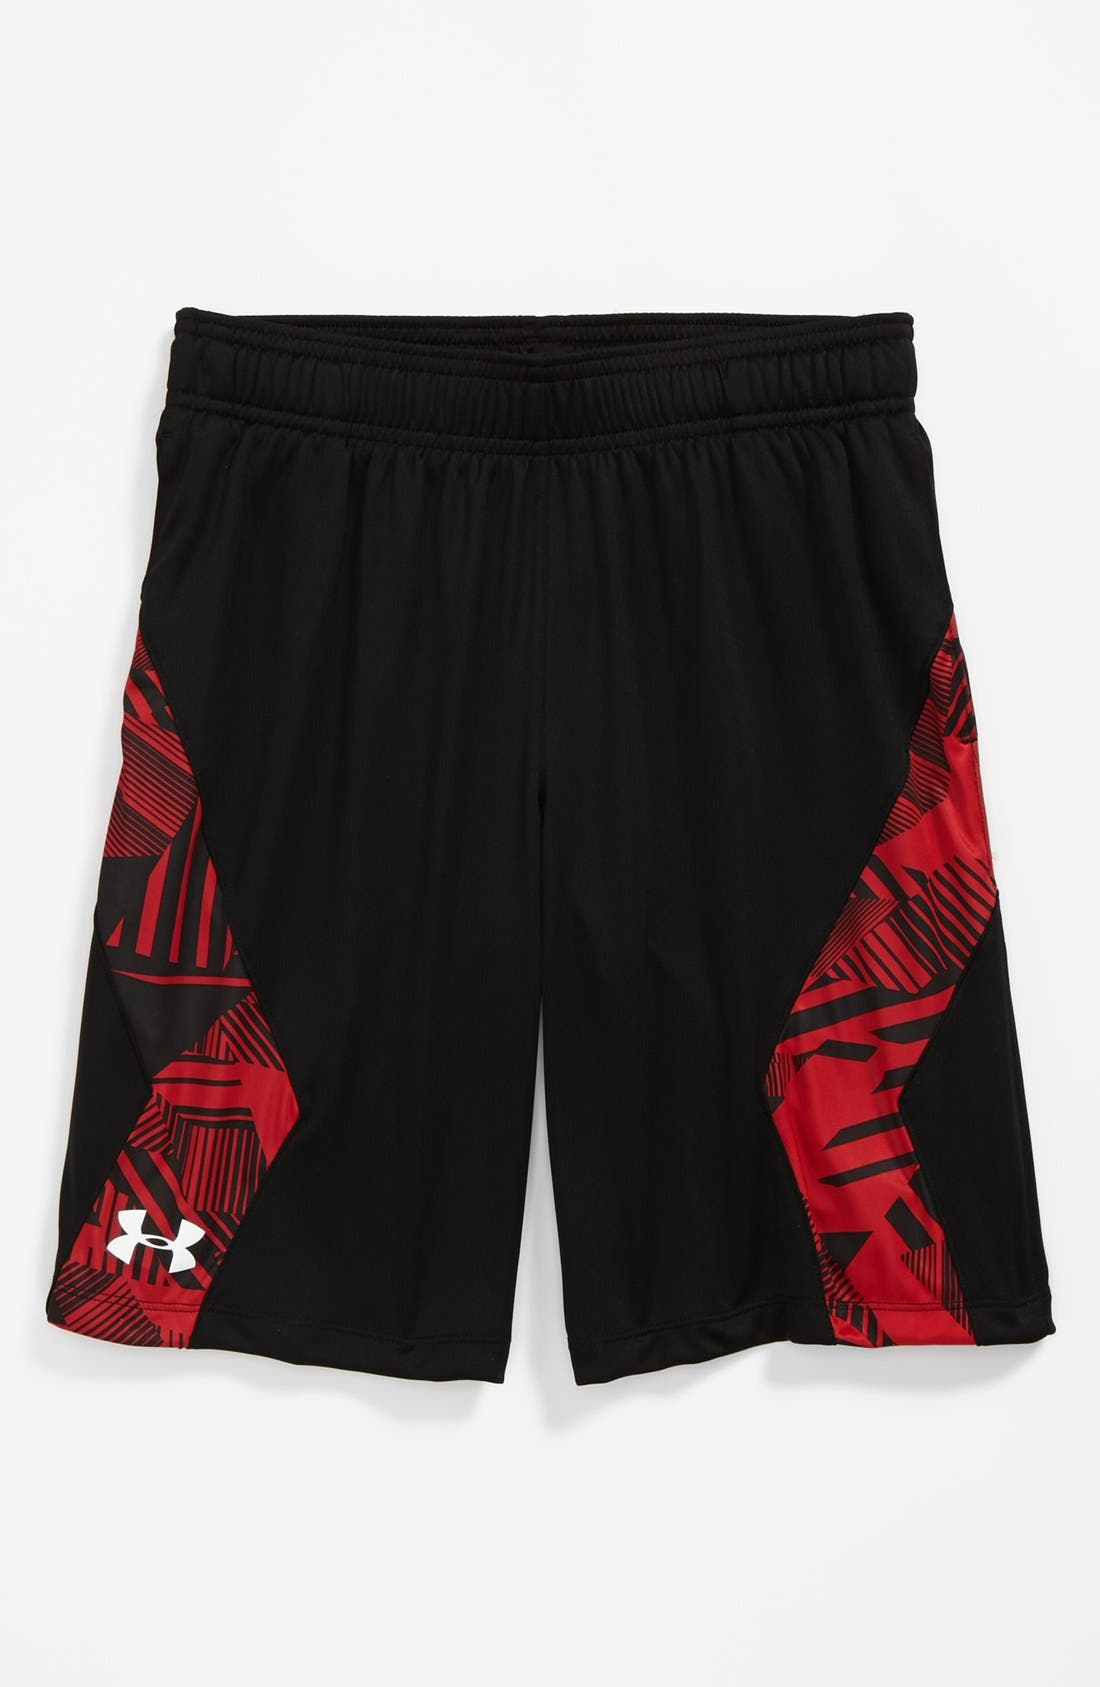 Main Image - Under Armour 'Domineer' Shorts (Big Boys)